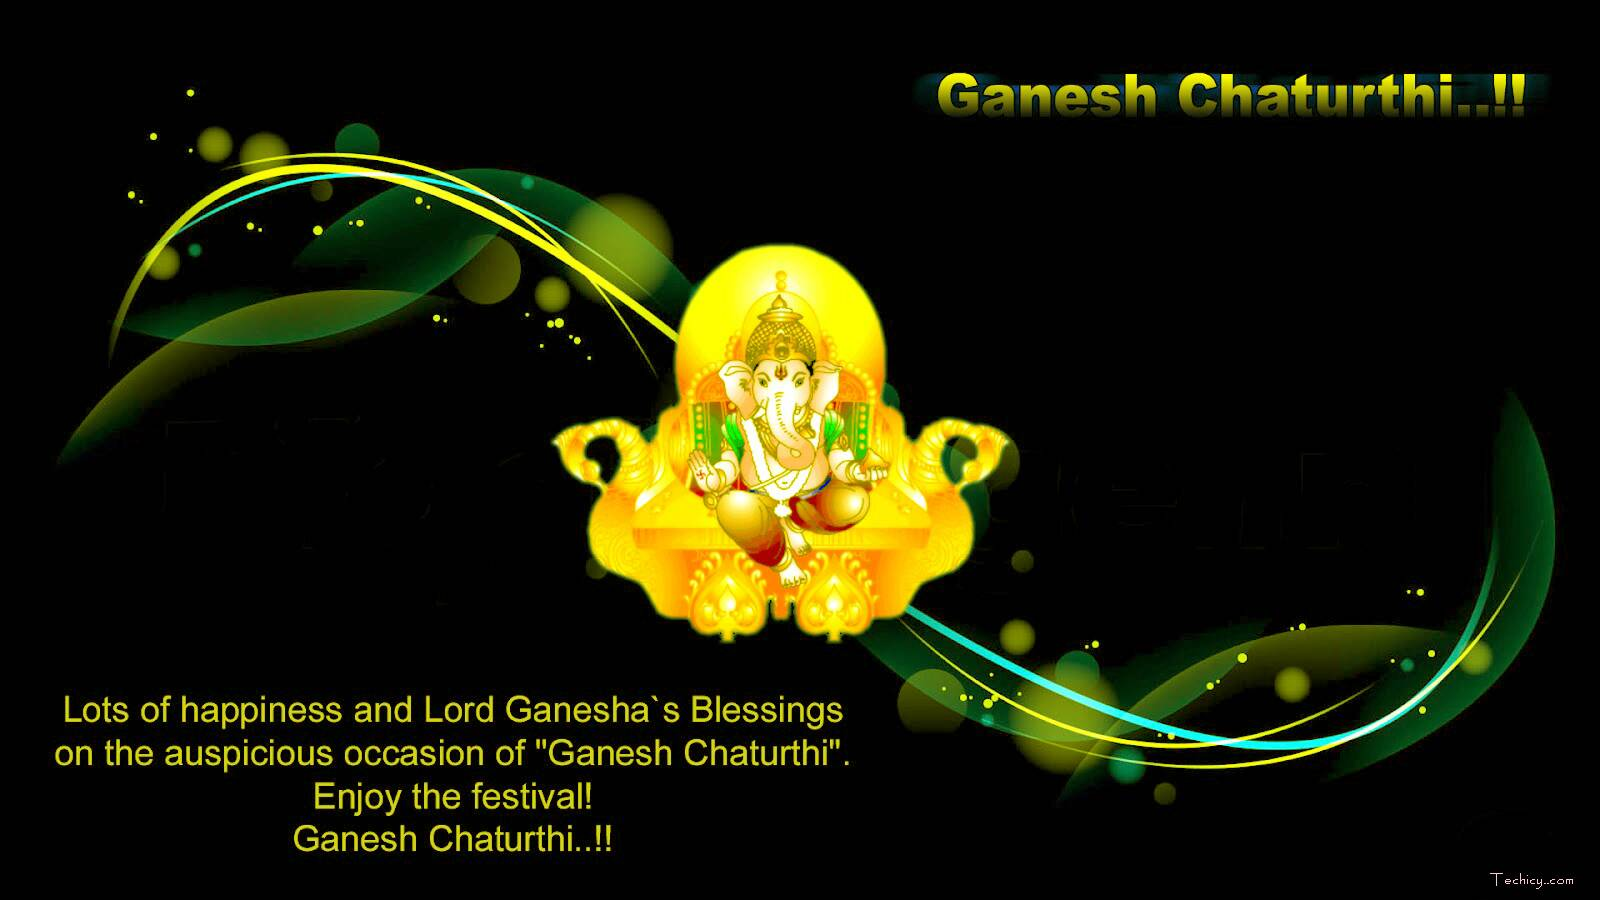 Hd wallpaper ganesh -  Source Techicy Com